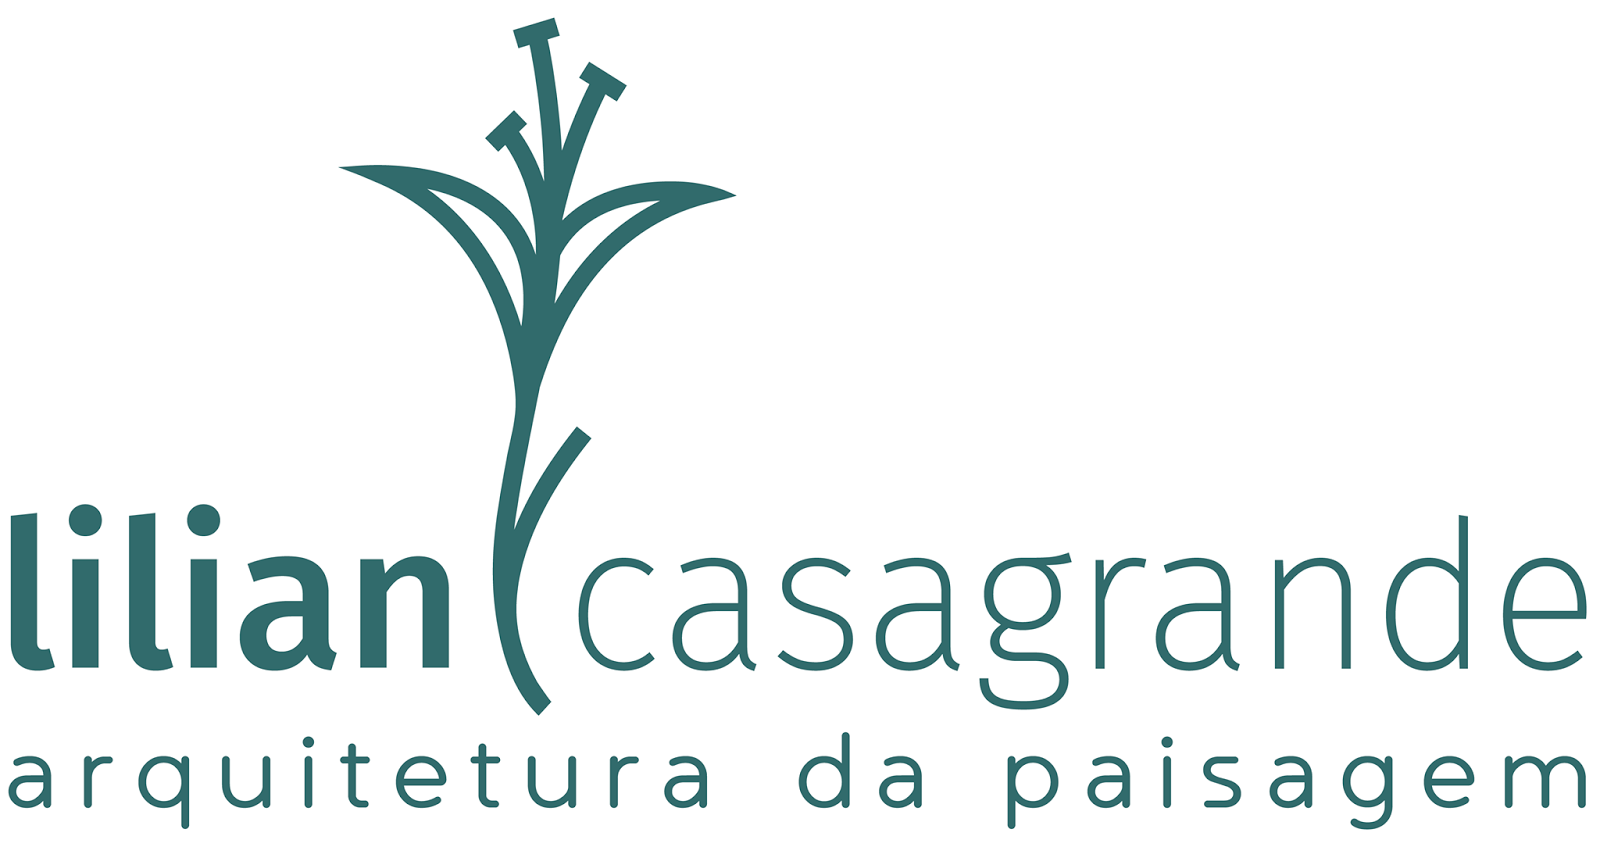 Lilian Casagrande Arquitetura da Paisagem